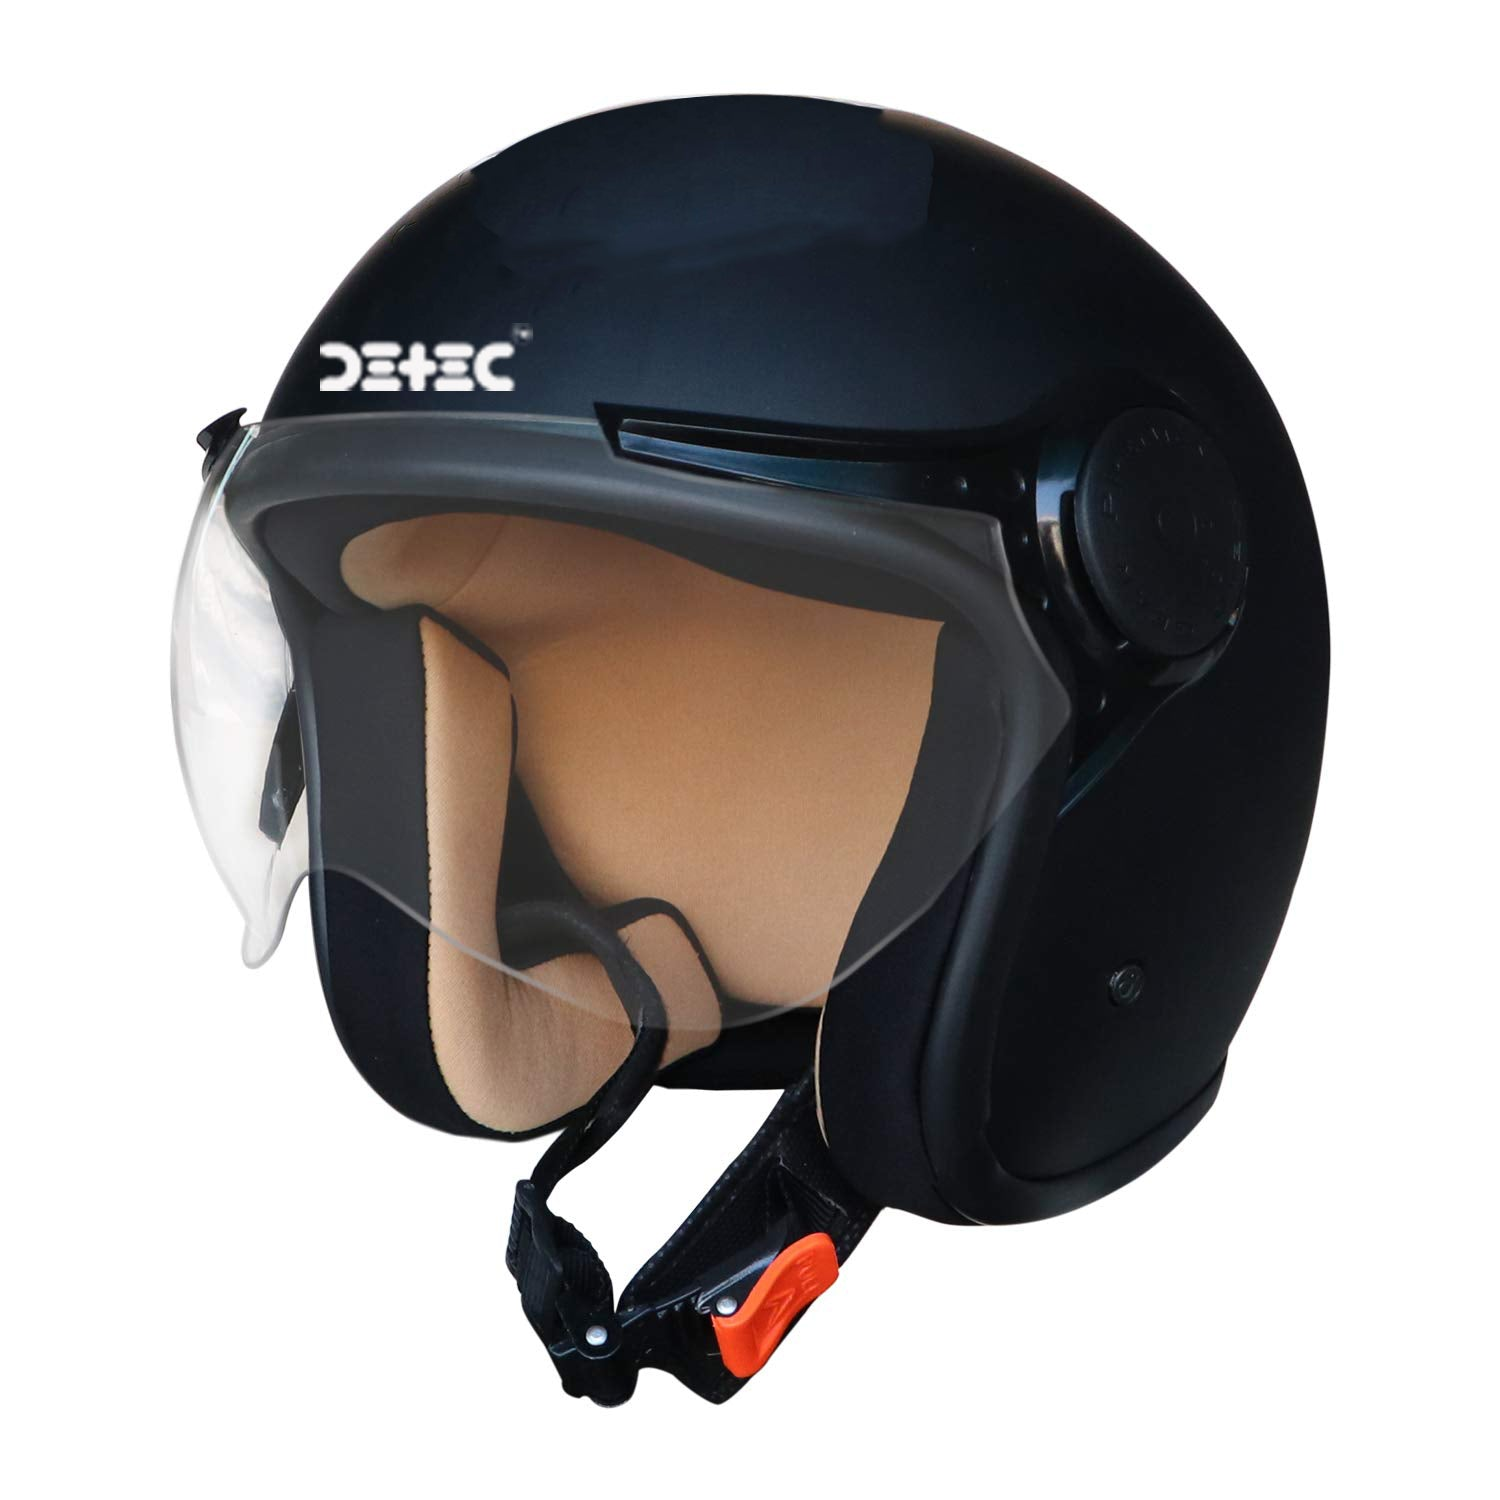 Detec™ Open Face Half Helmet for Men & Women